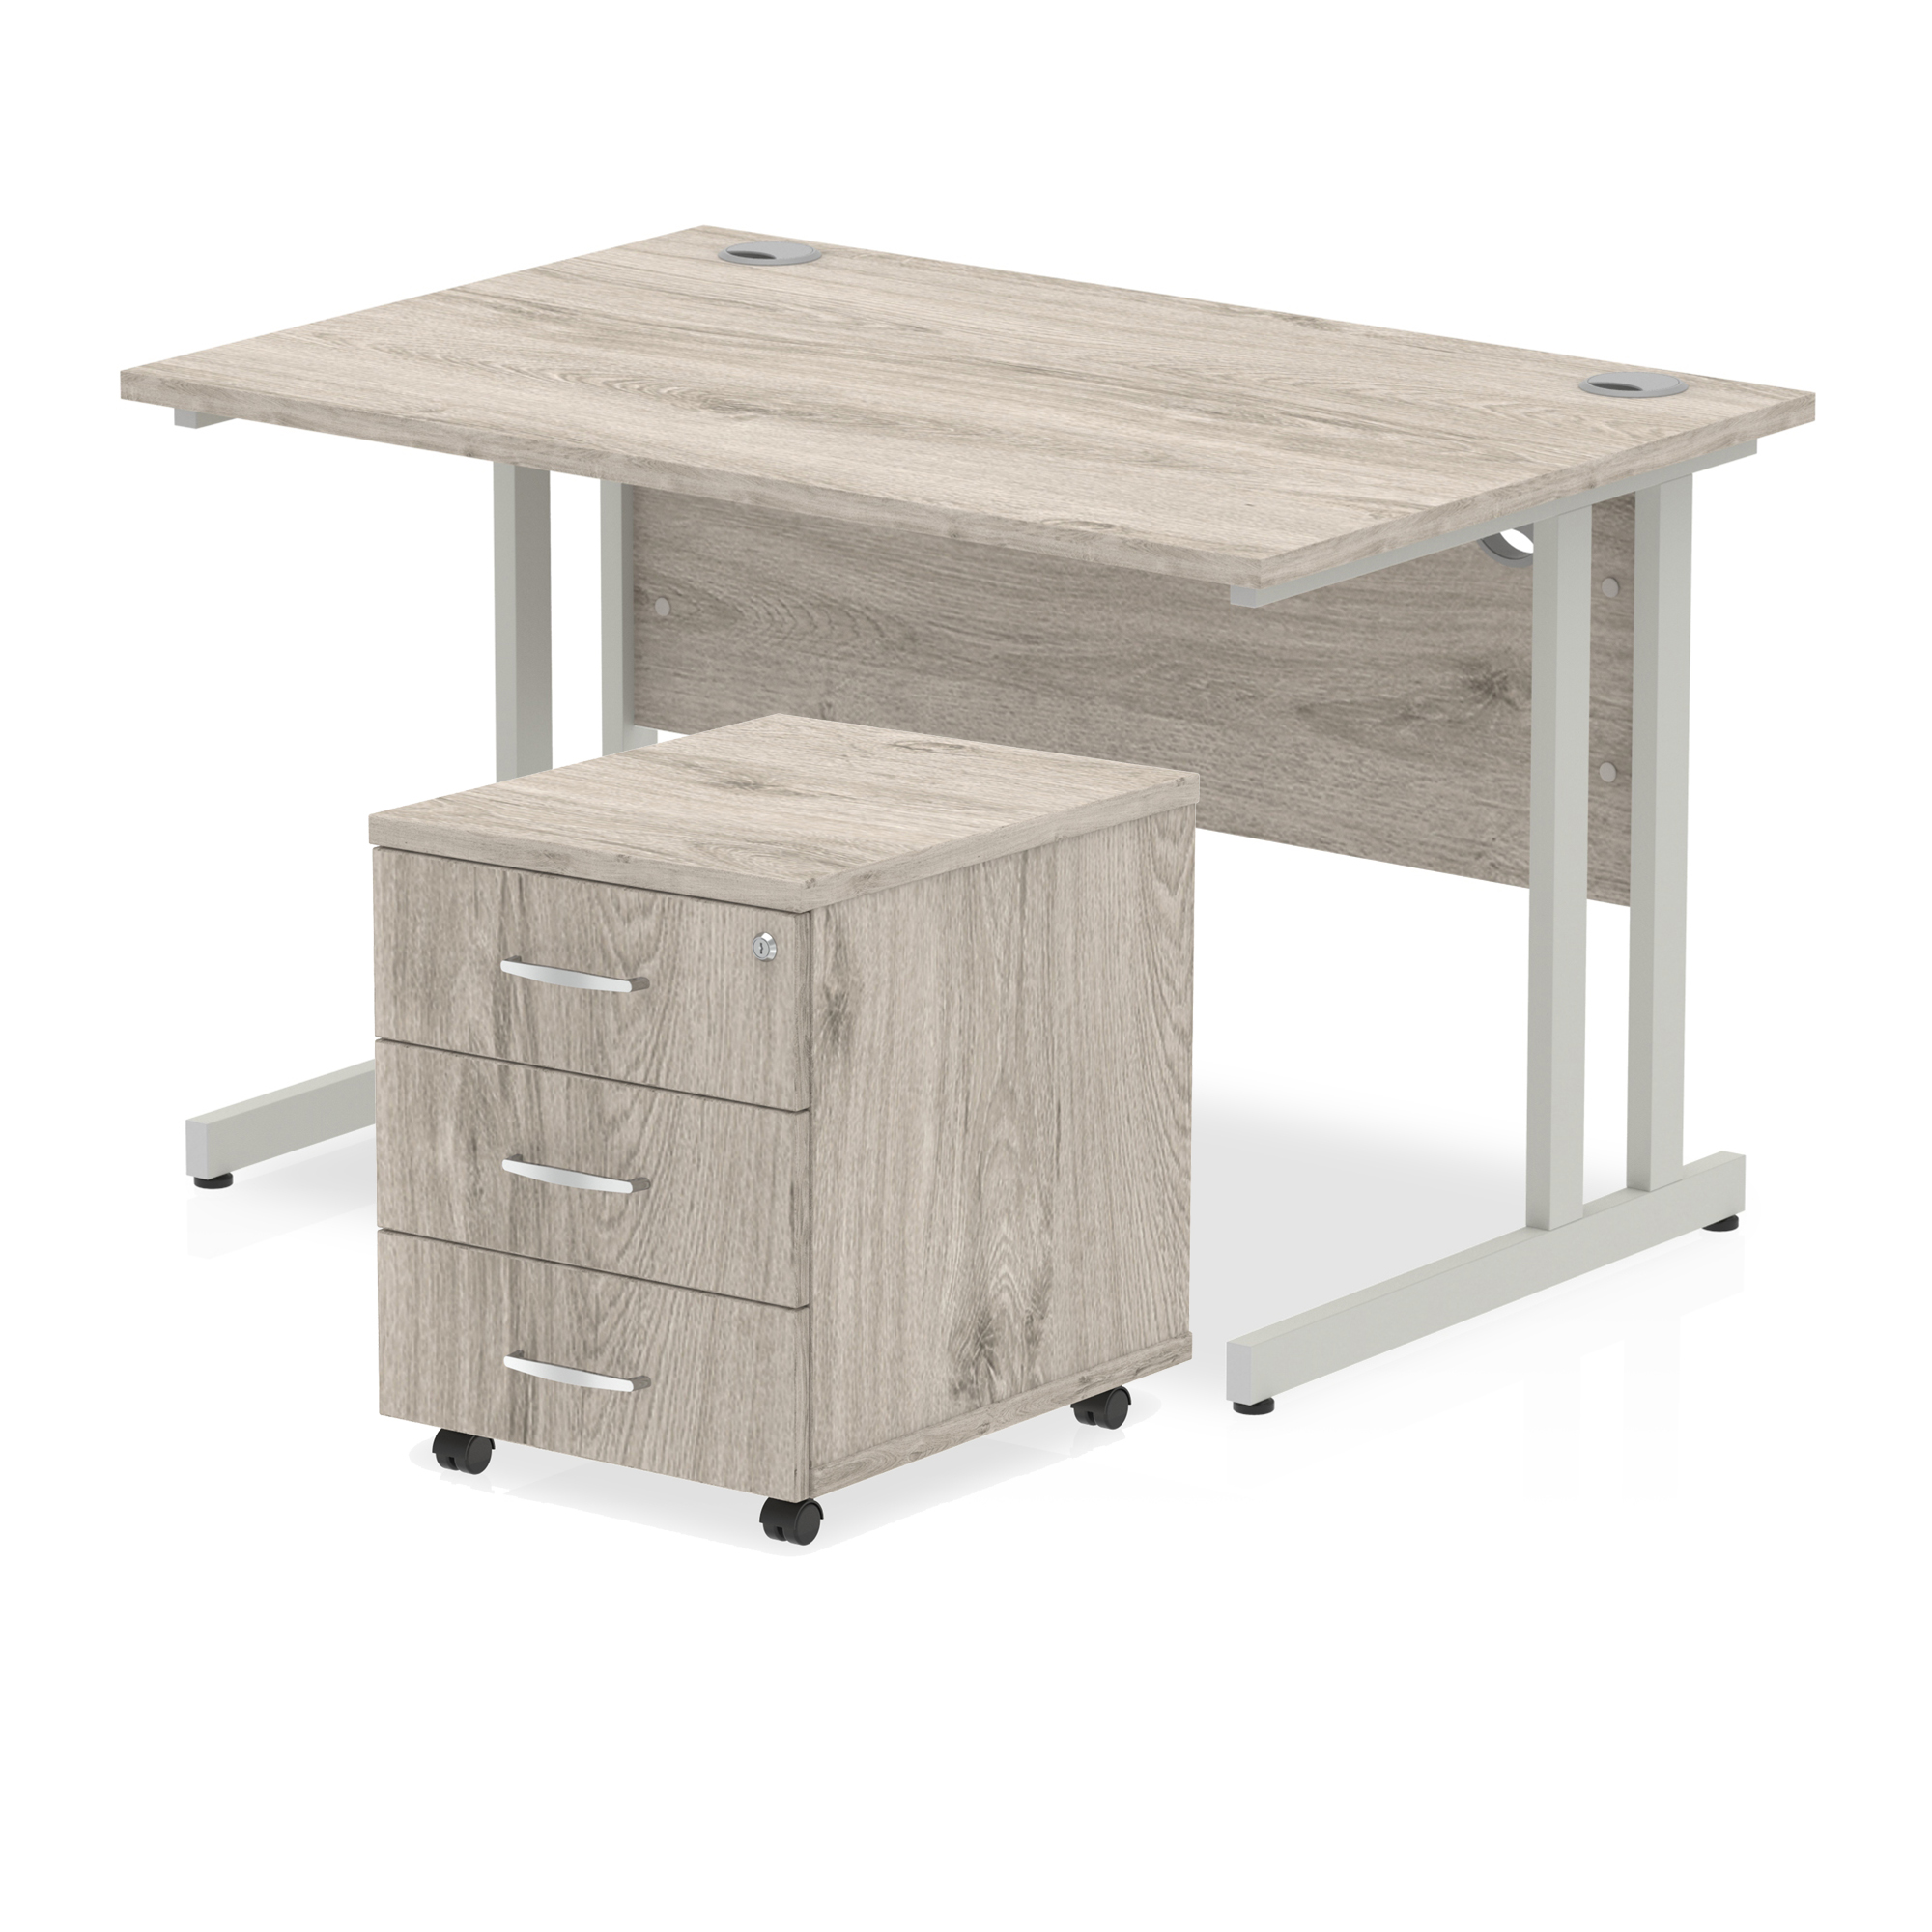 Desks Trexus Cantilever Desk 1200x800 & 3 Drawer Pedestal Grey Oak Bundle Offer Feb-Apr 2020